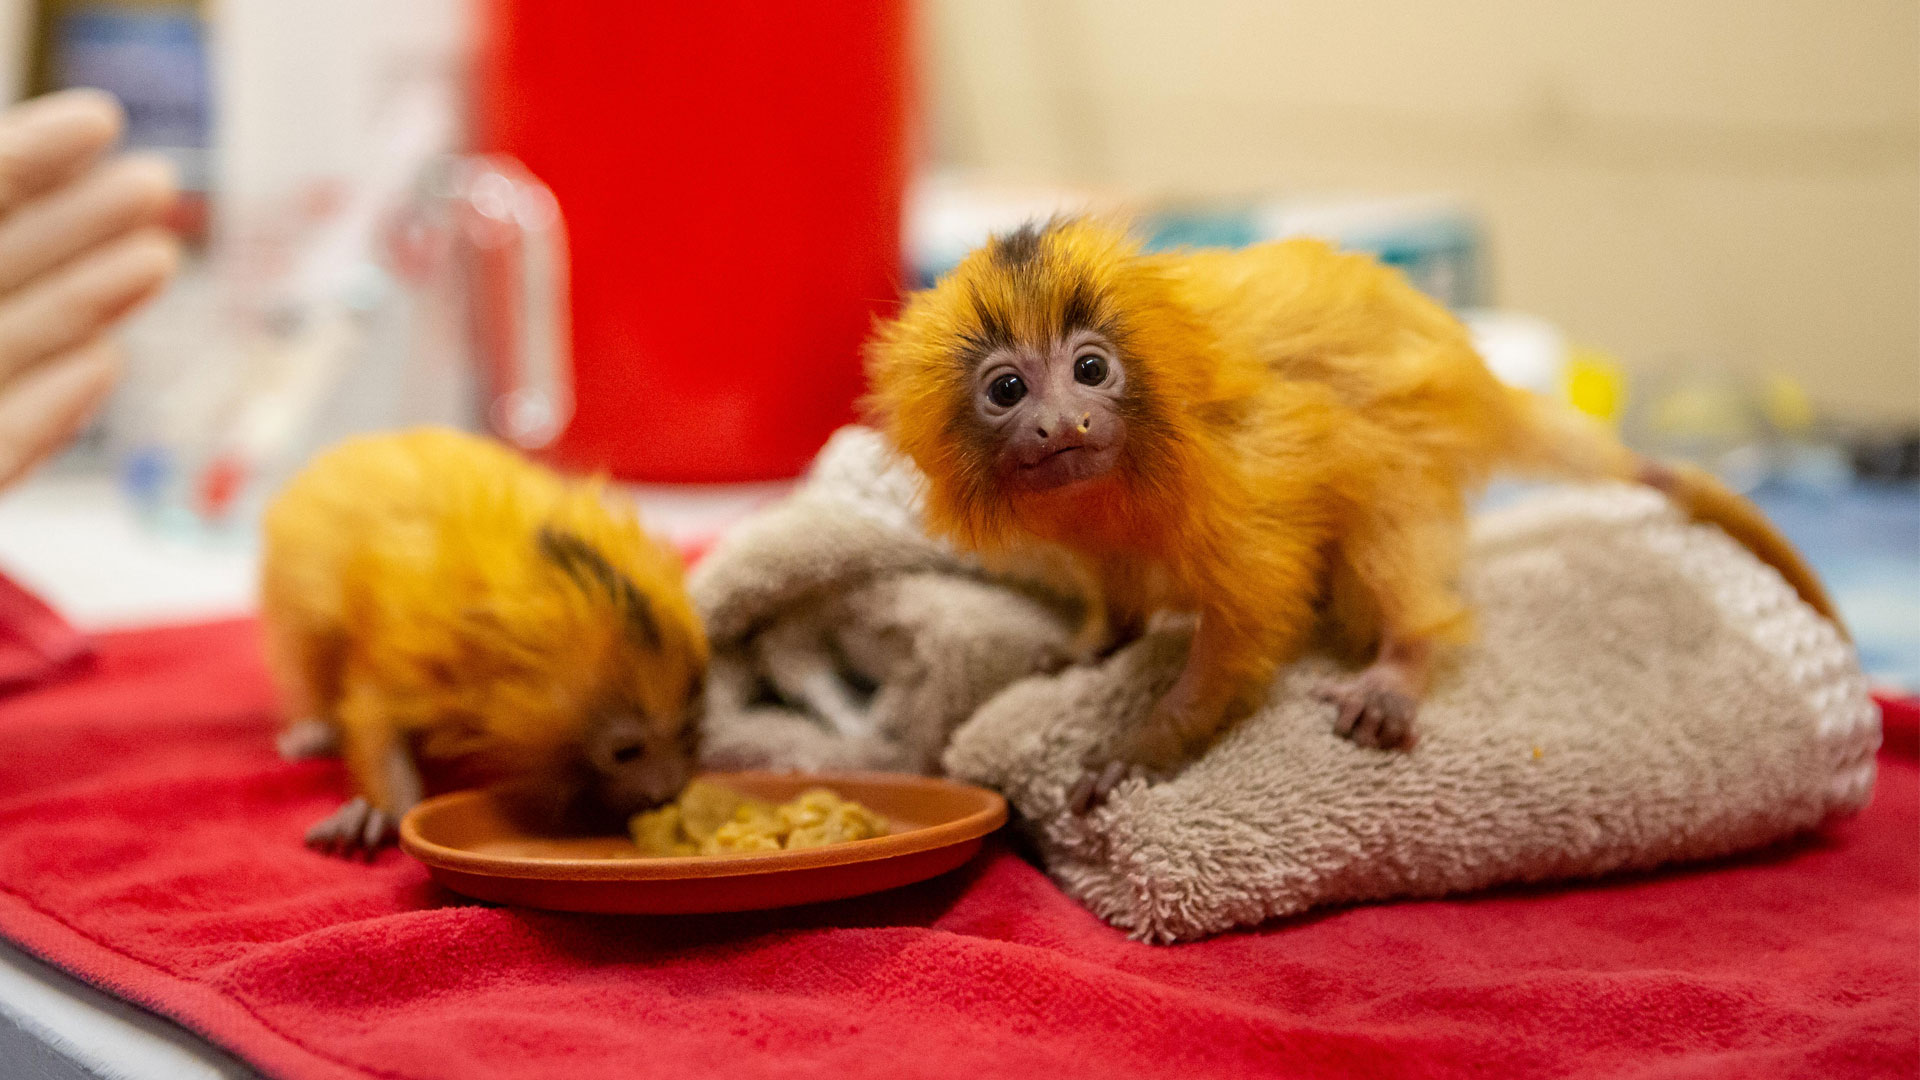 https://rfacdn.nz/zoo/assets/media/golden-lion-tamarin-twins-gallery-4.jpg